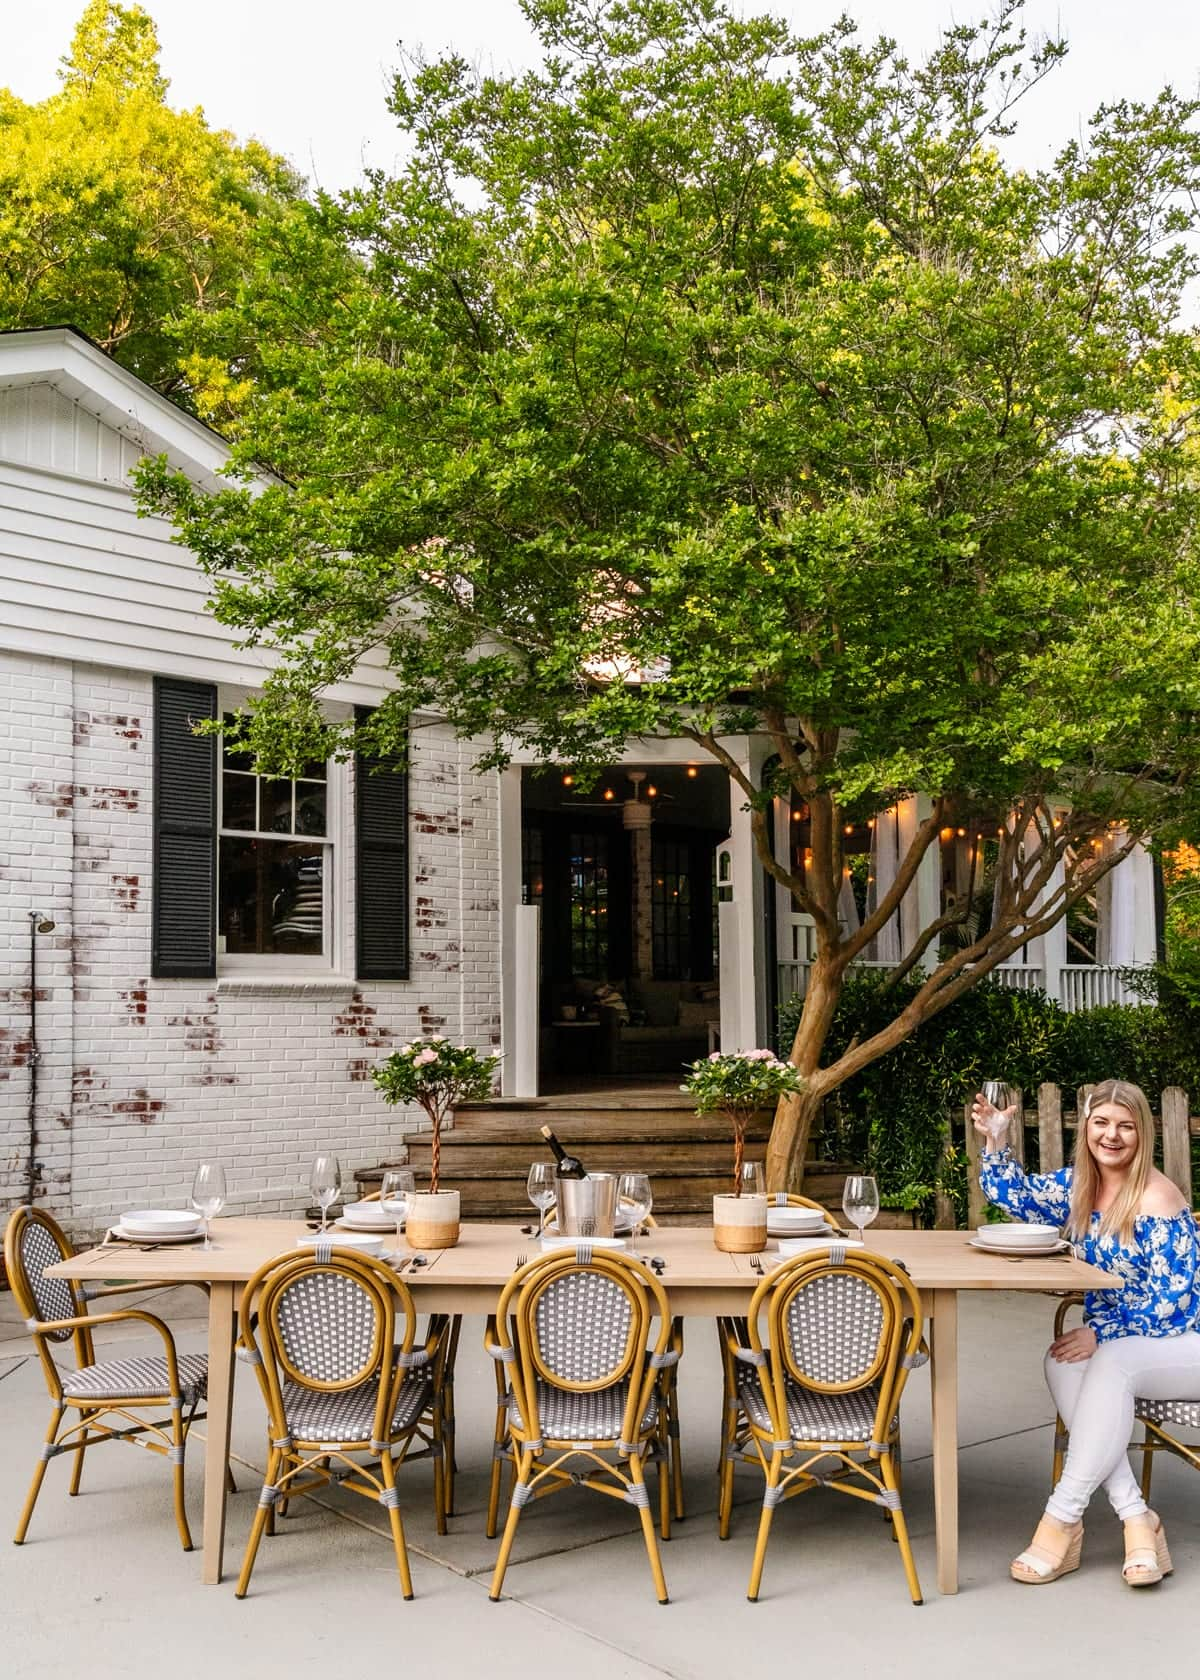 outdoor patio with limewashed brick and dining table